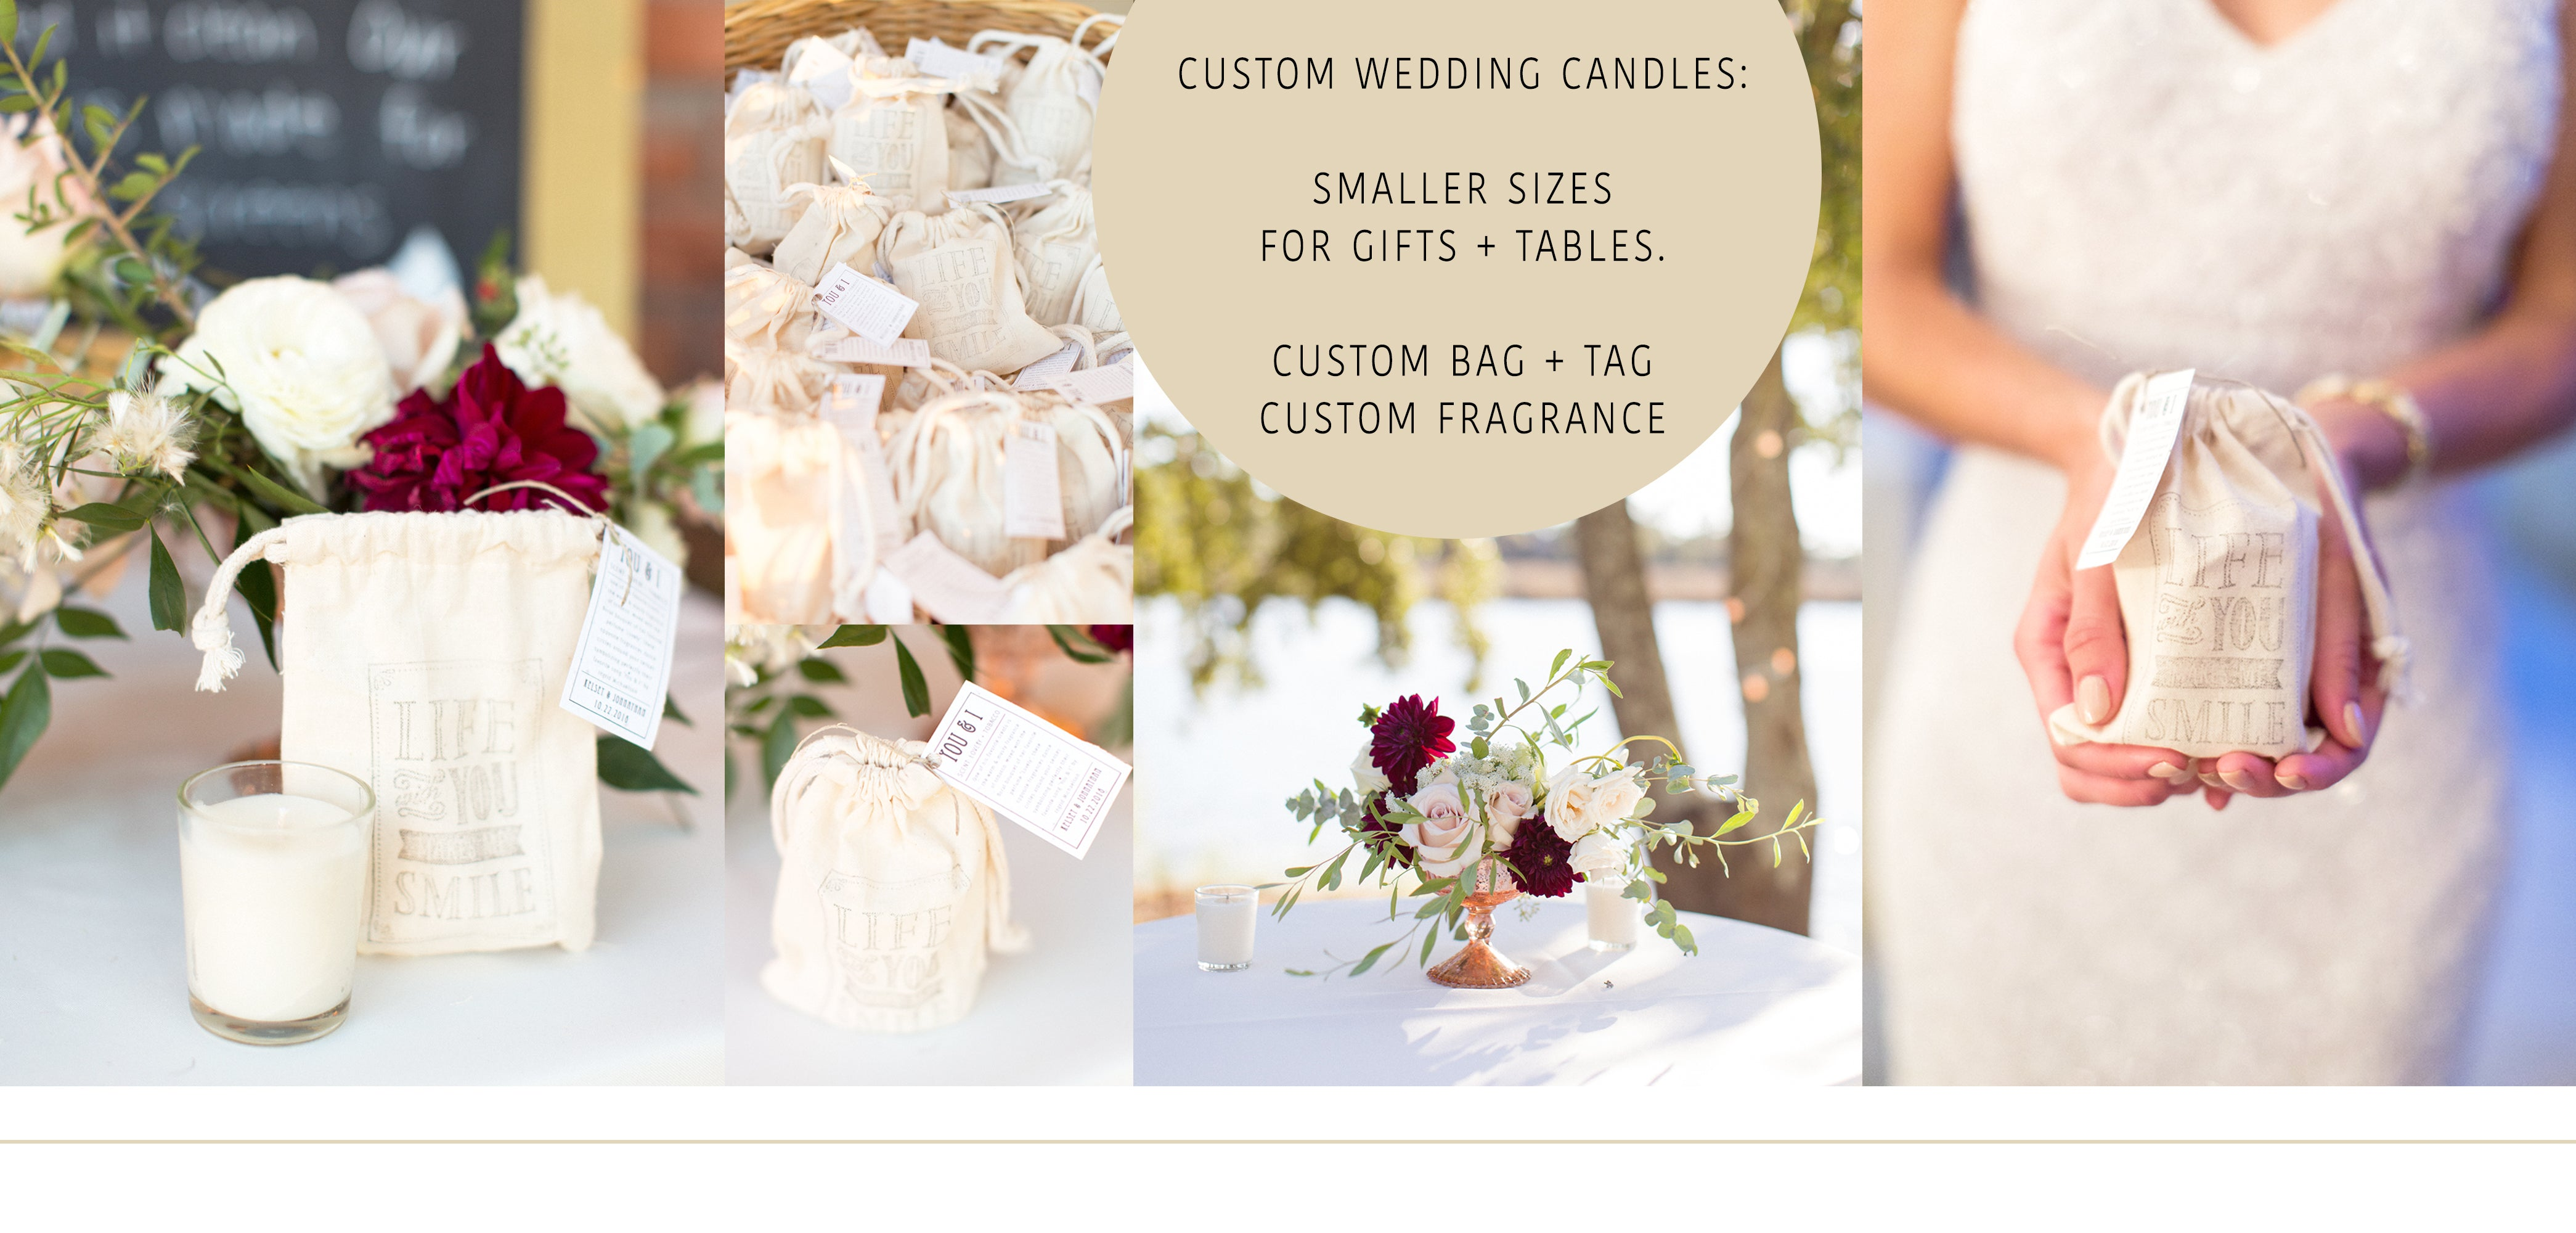 custom wedding candles custom wedding gifts